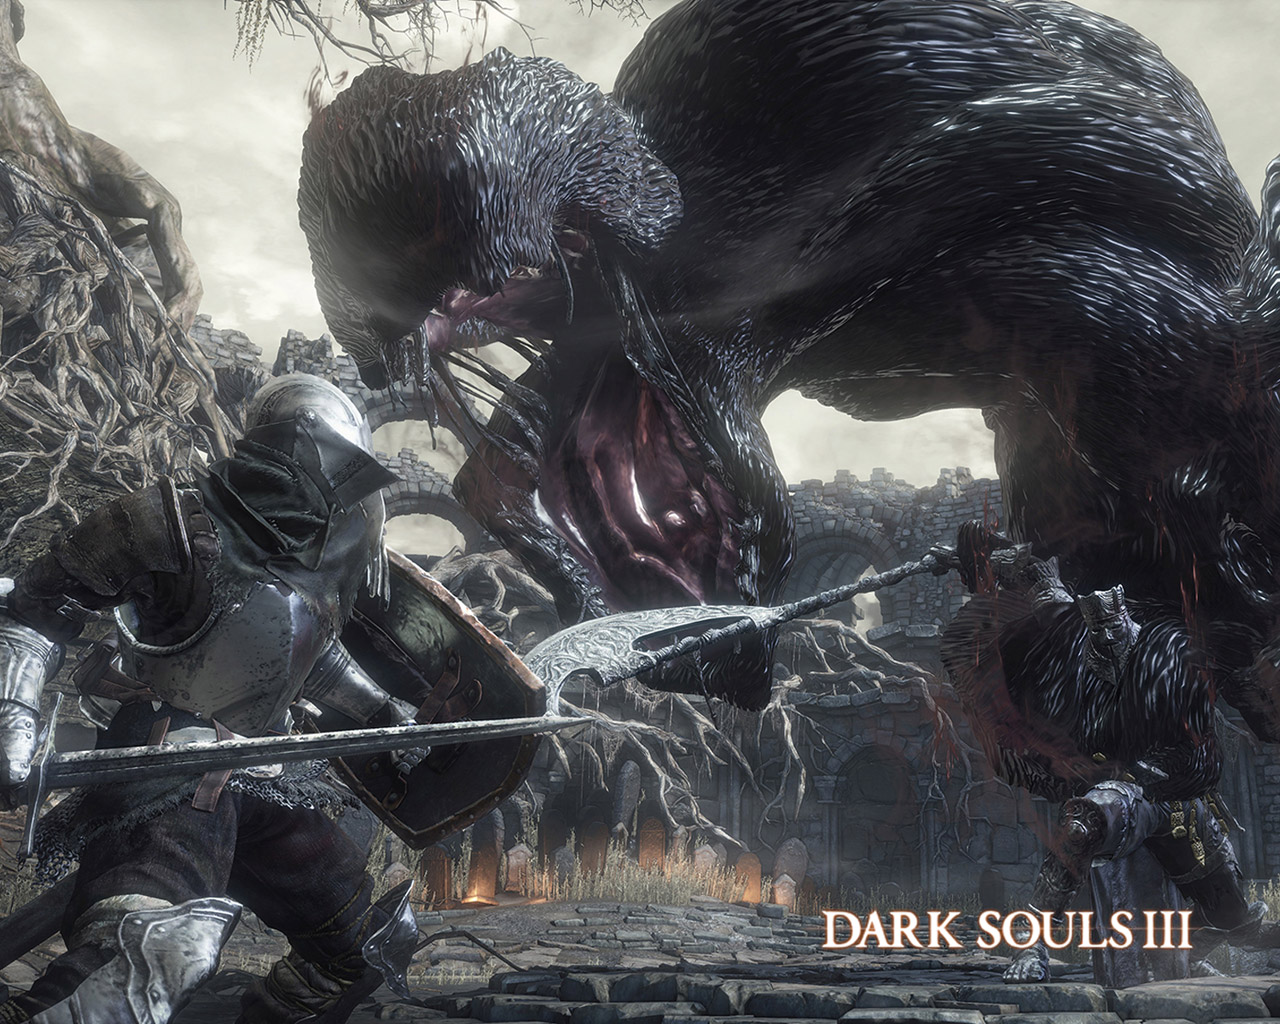 Free Dark Souls III Wallpaper in 1280x1024